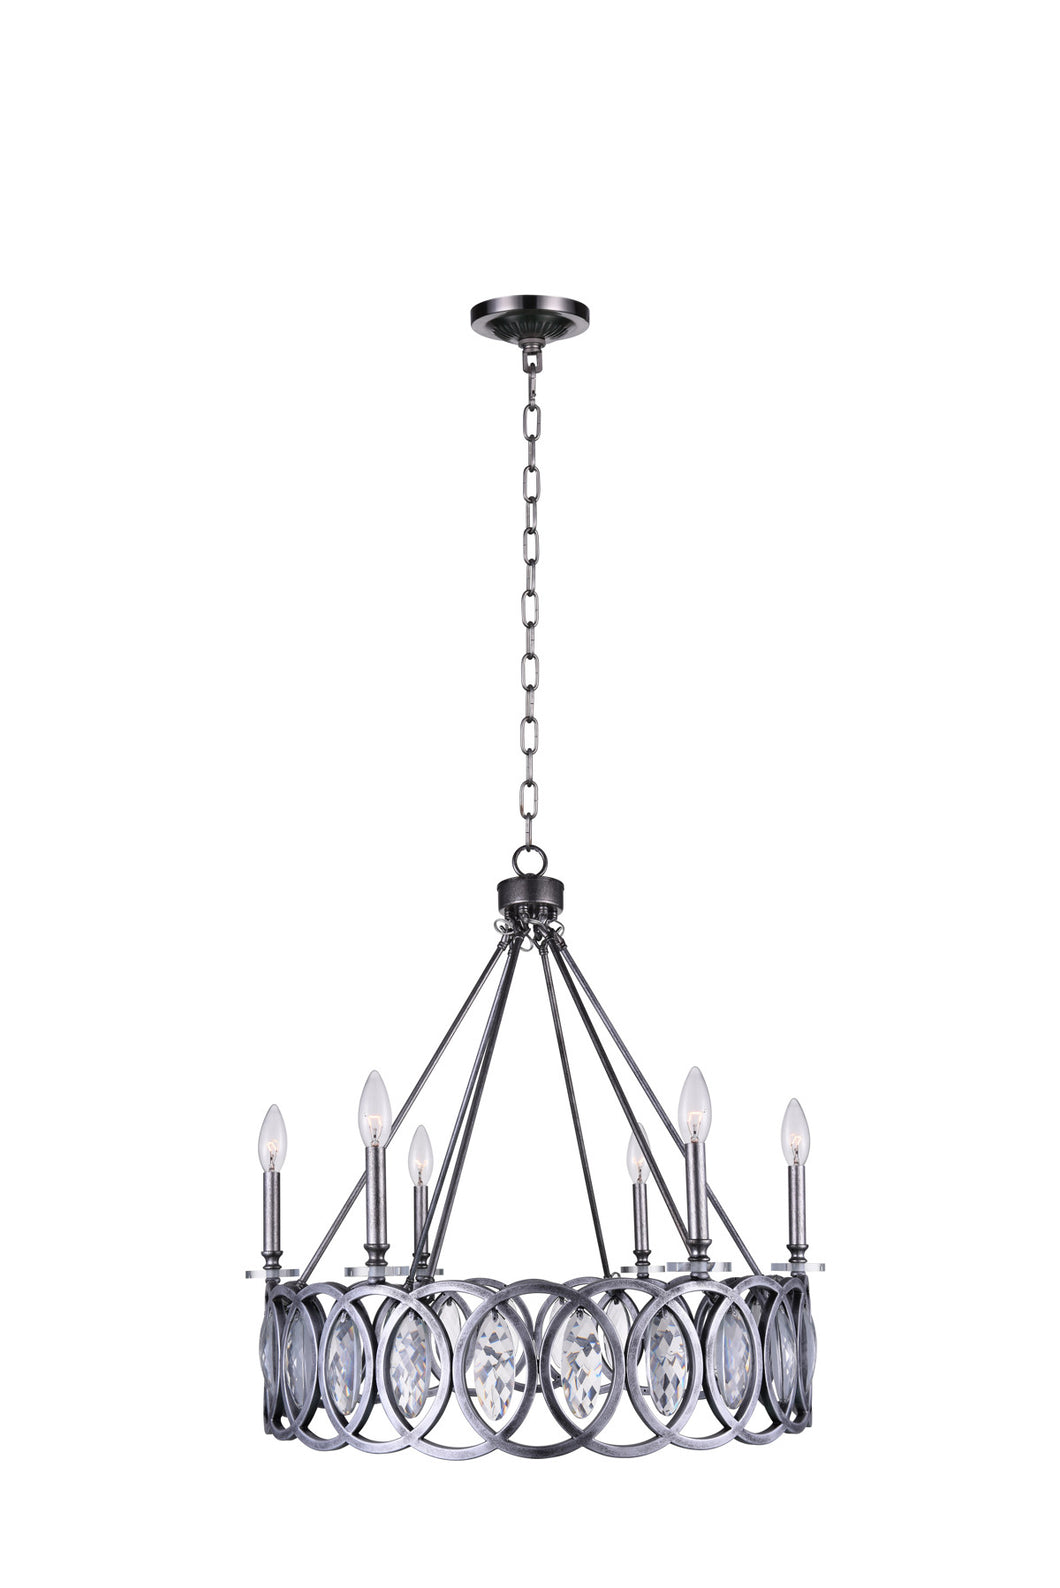 6 Light Candle Chandelier with Gun Metal finish